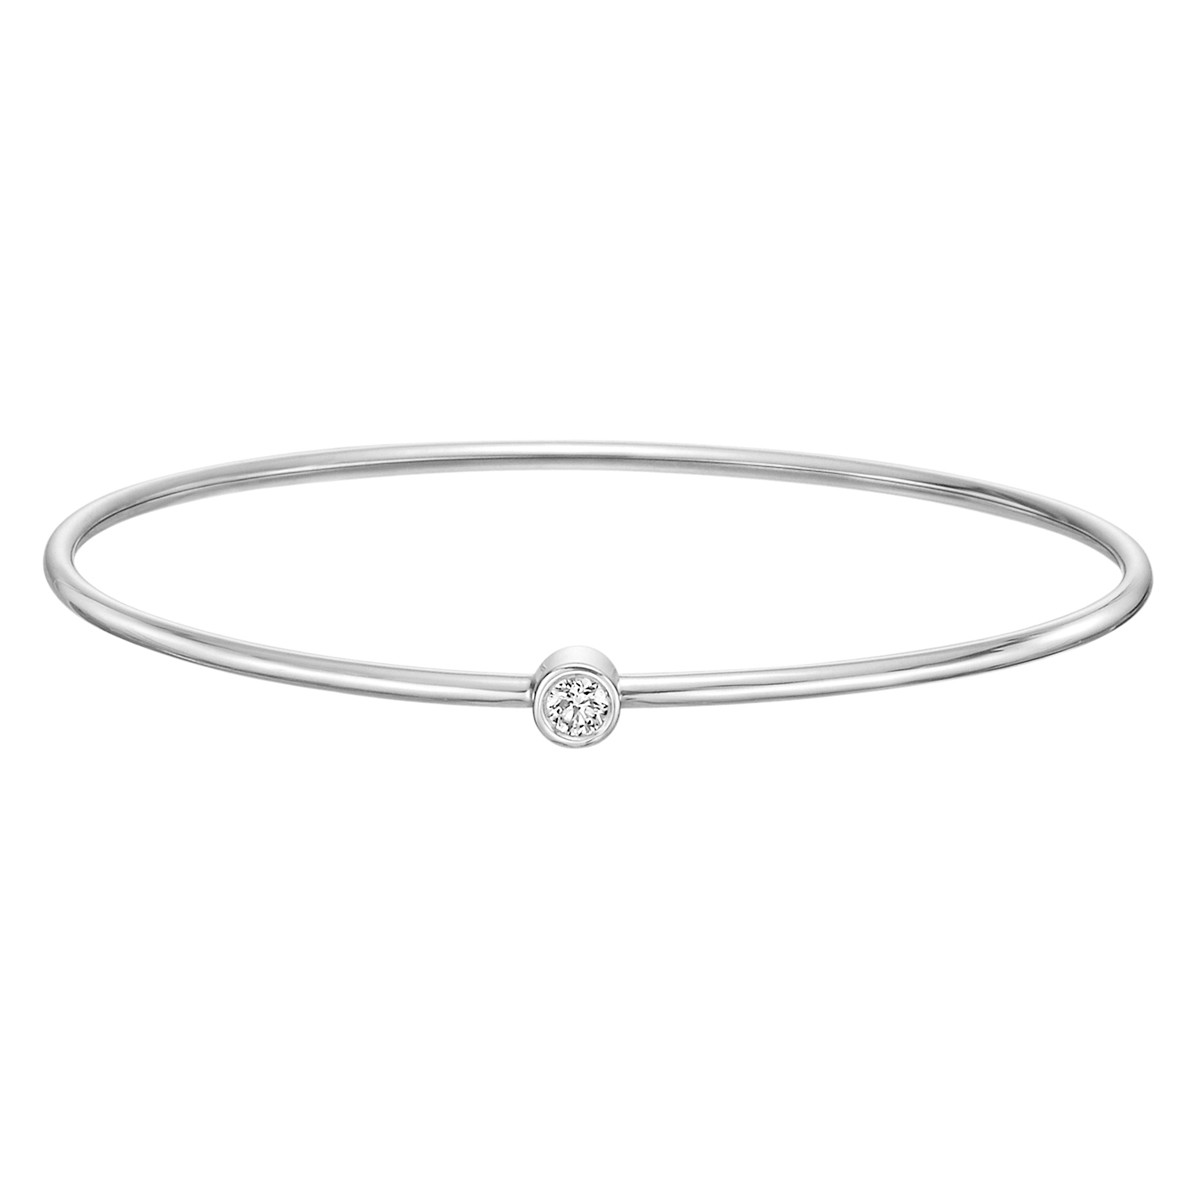 18k White Gold Single Diamond Twist Bangle